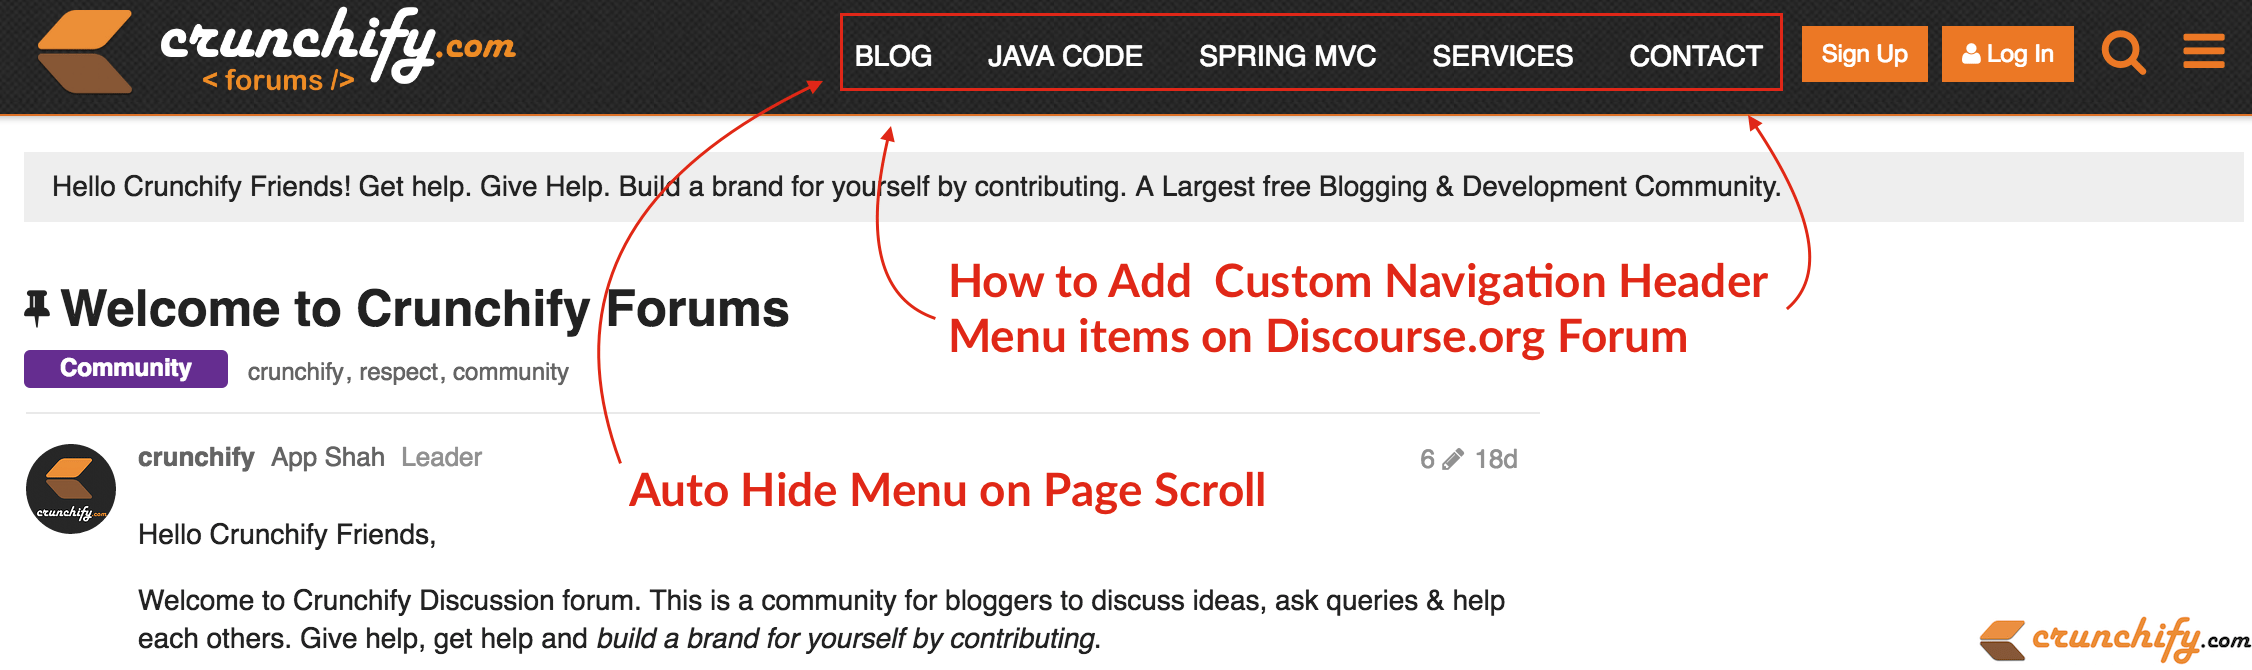 How to Add, Auto Hide Custom Navigation Header Menu items on Discourse.org Forum